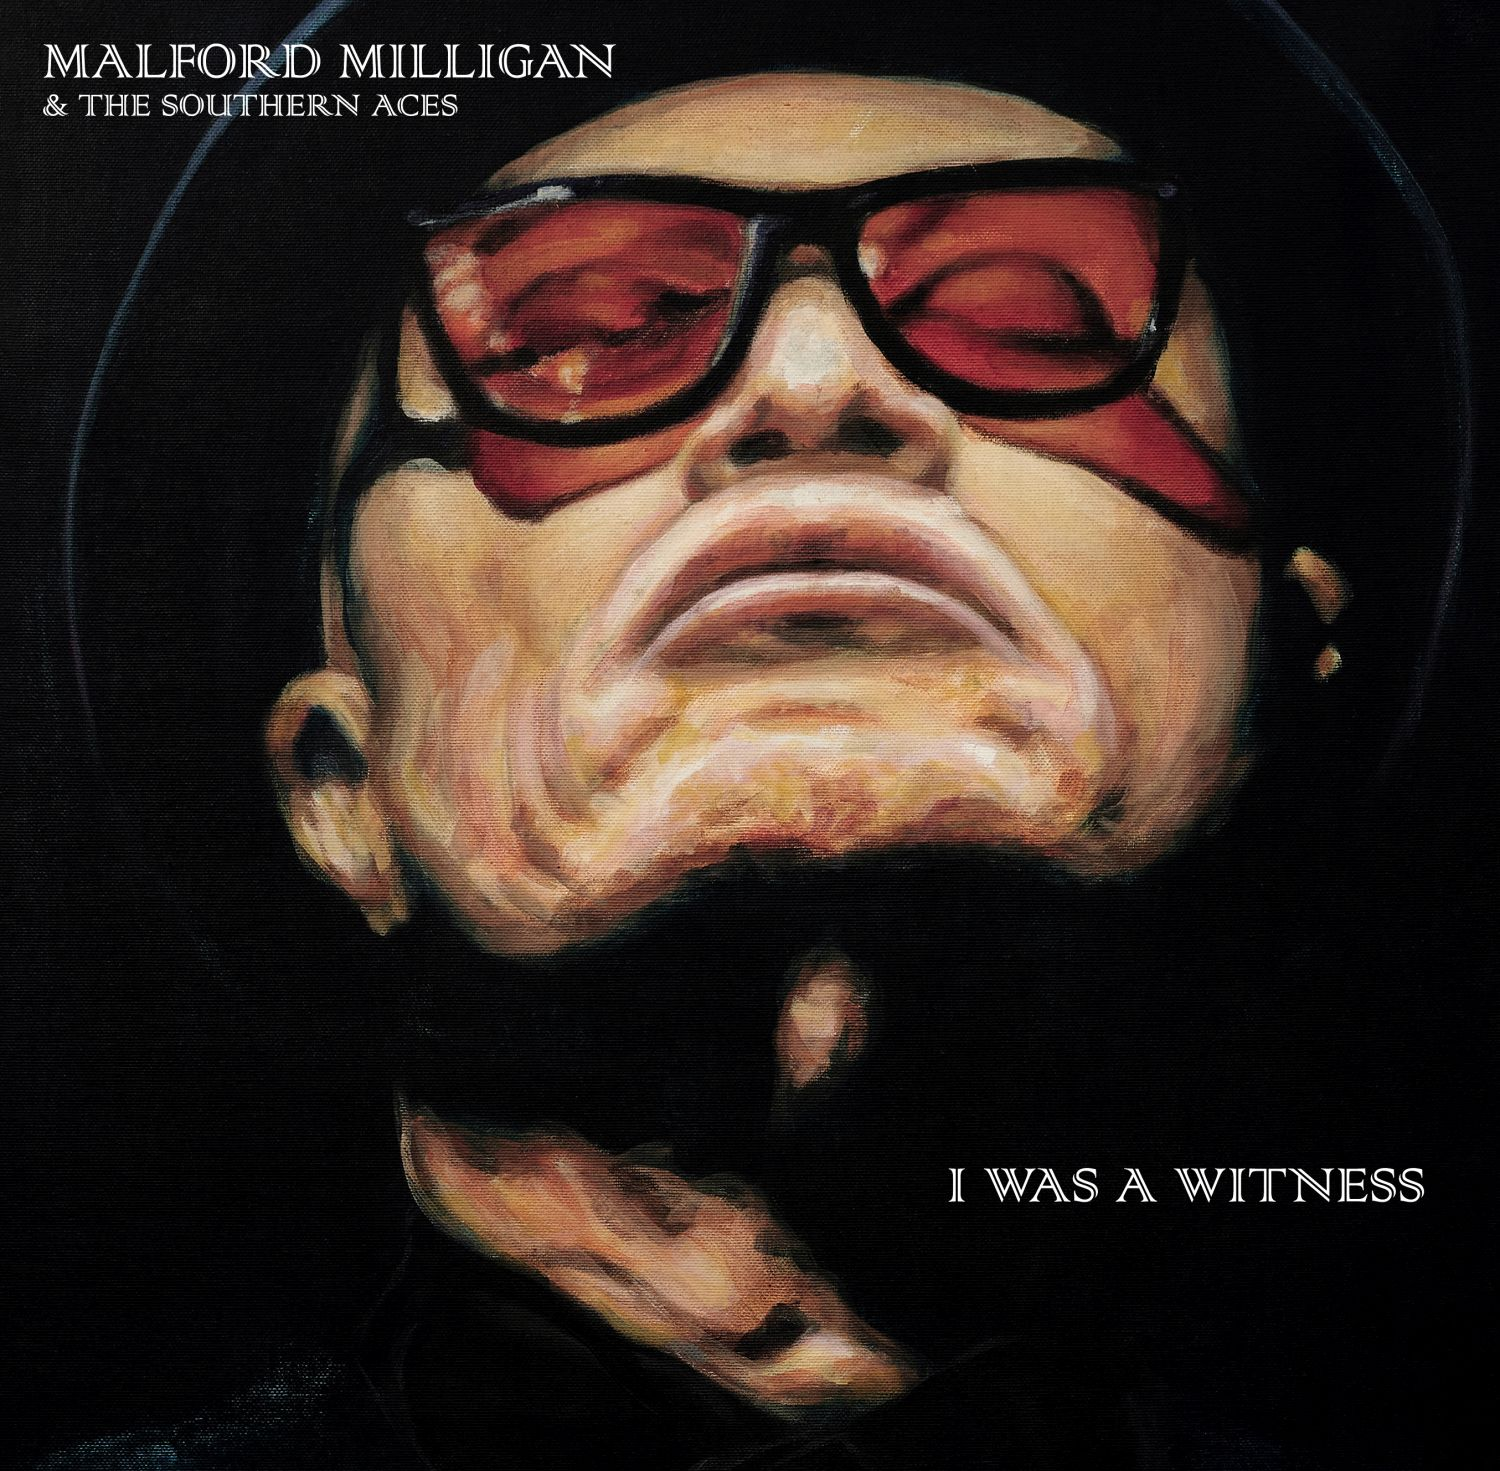 Malford Milligan & The Southern Aces - I Was A Witness - Suburban Records